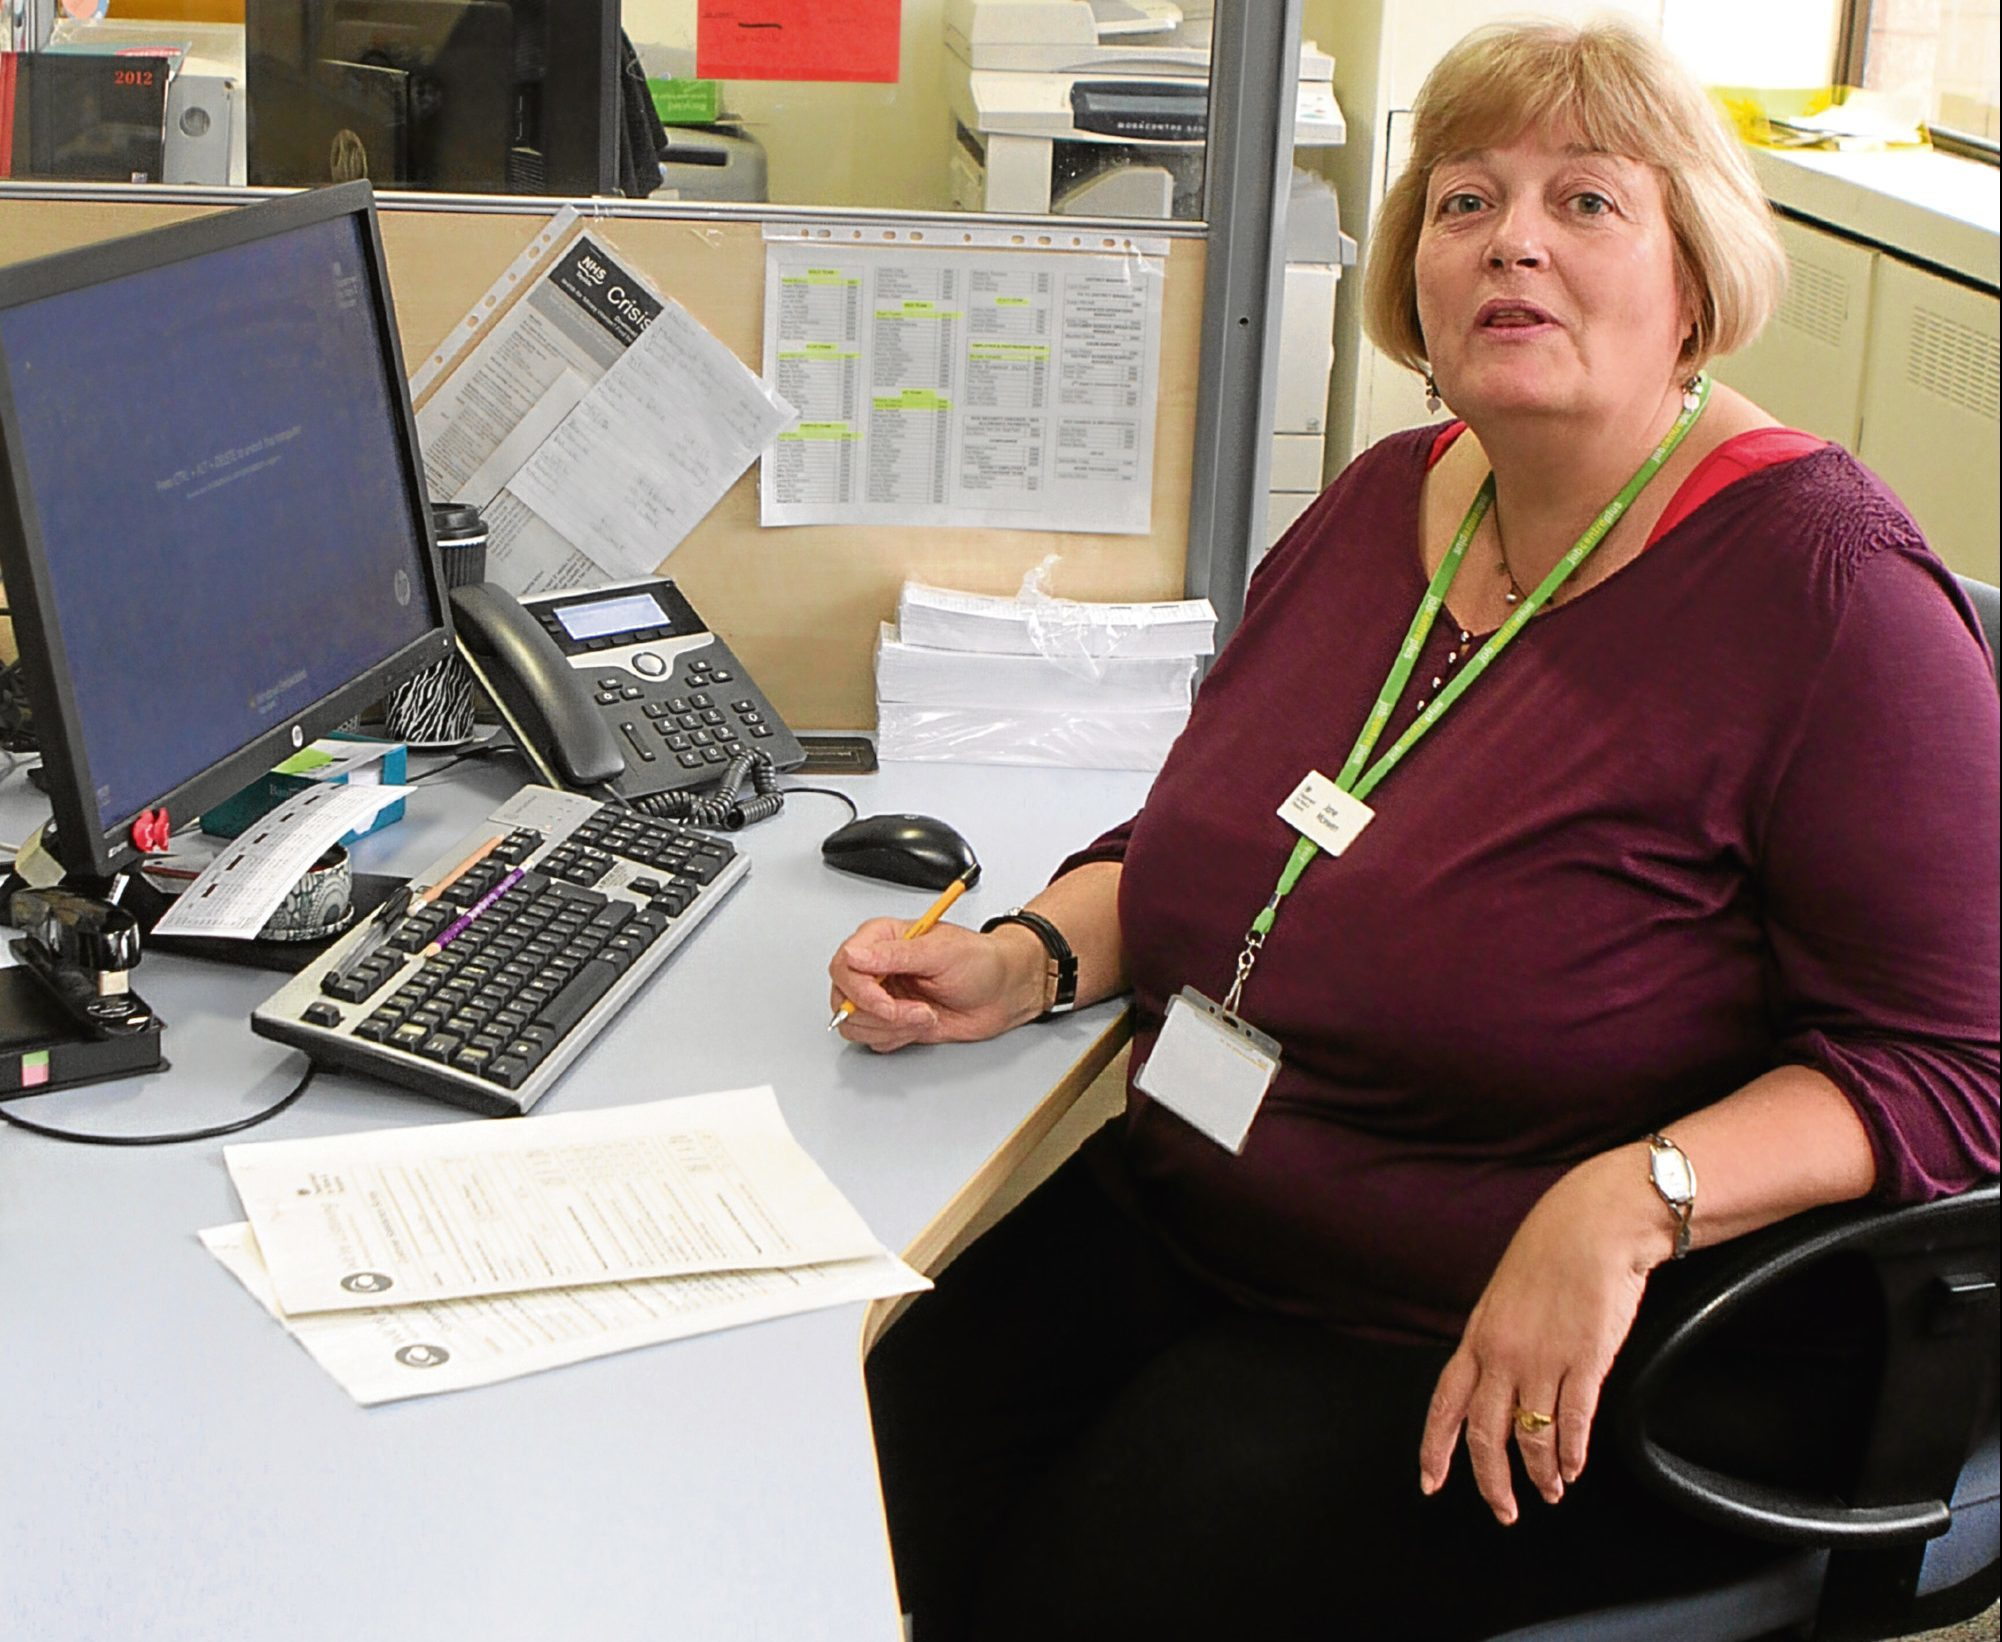 Jane McEwen, work service manager at Dundee's Jobcentre Plus.